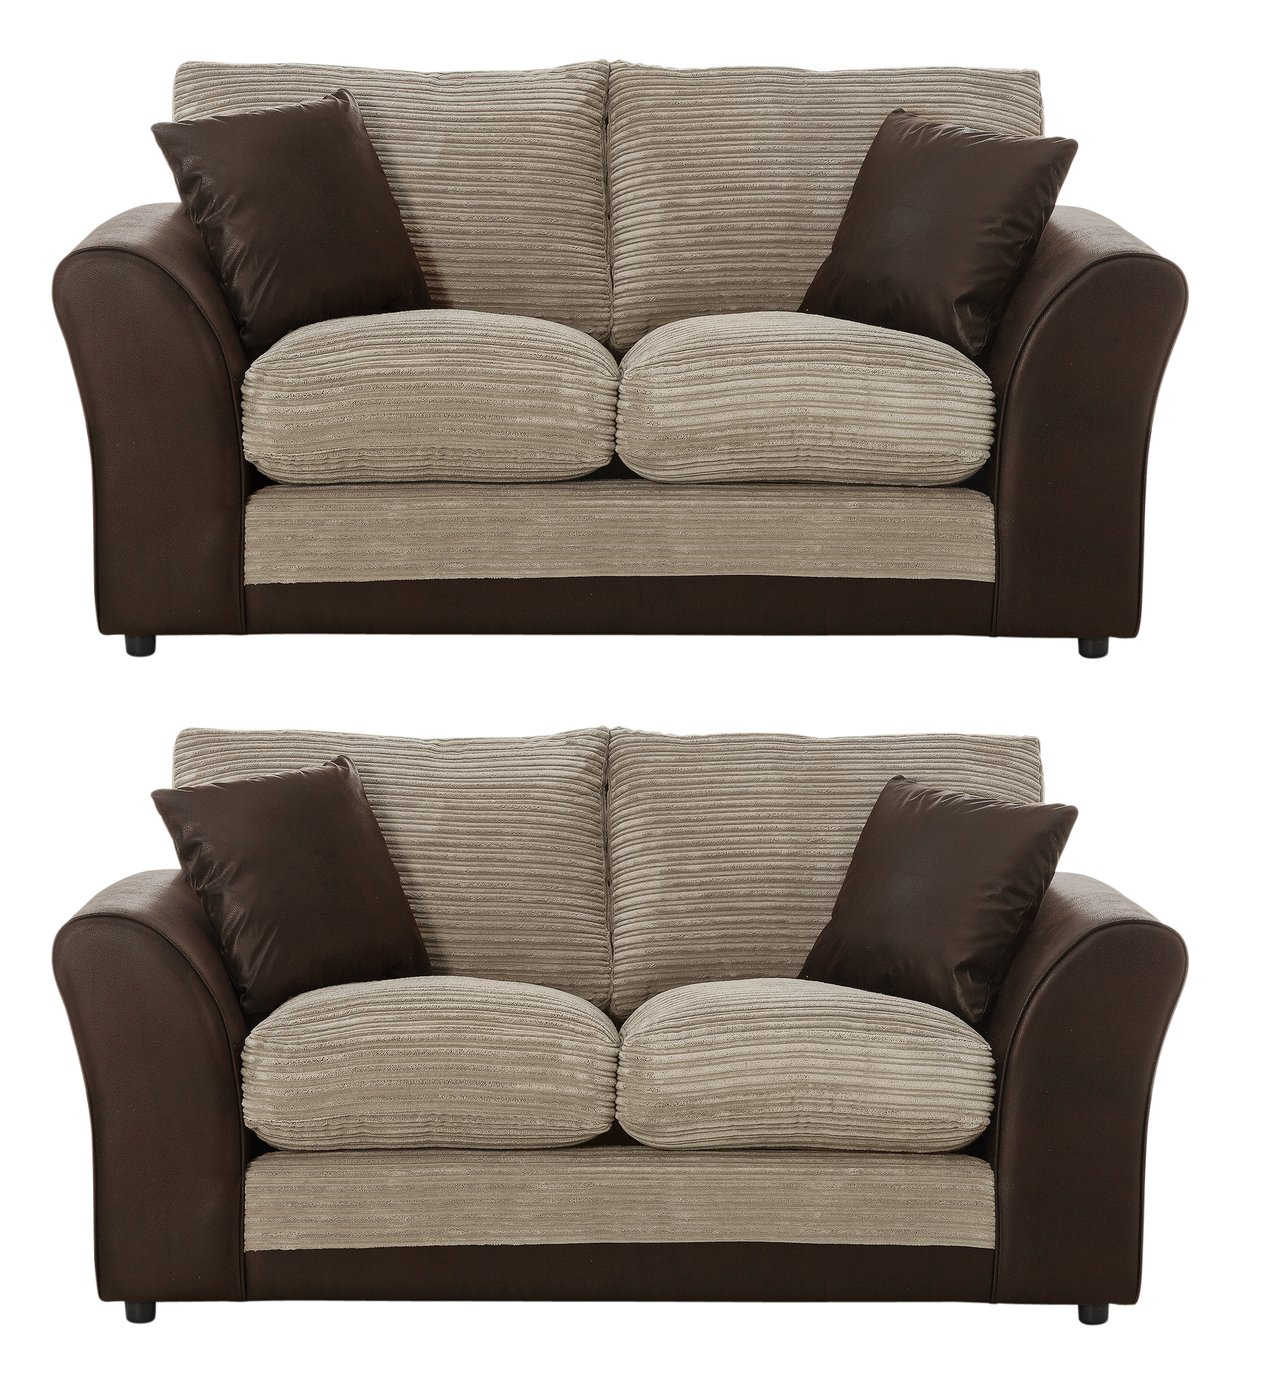 Argos Home Harley 2 Seater and 2 Seater Fabric Sofa - Mink